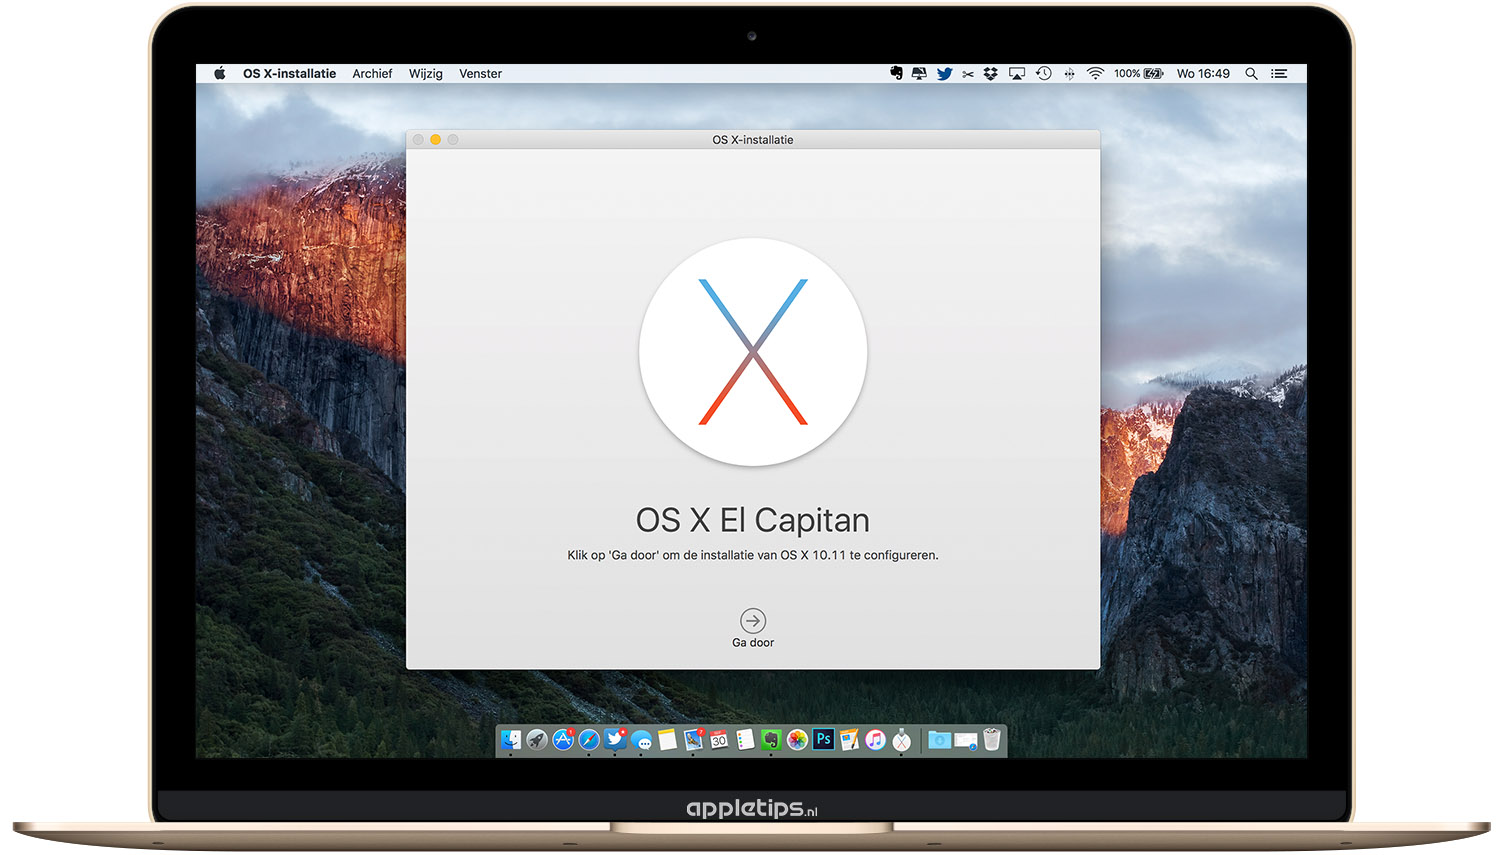 OS X El Capitan: Een bootable USB stick maken - appletips